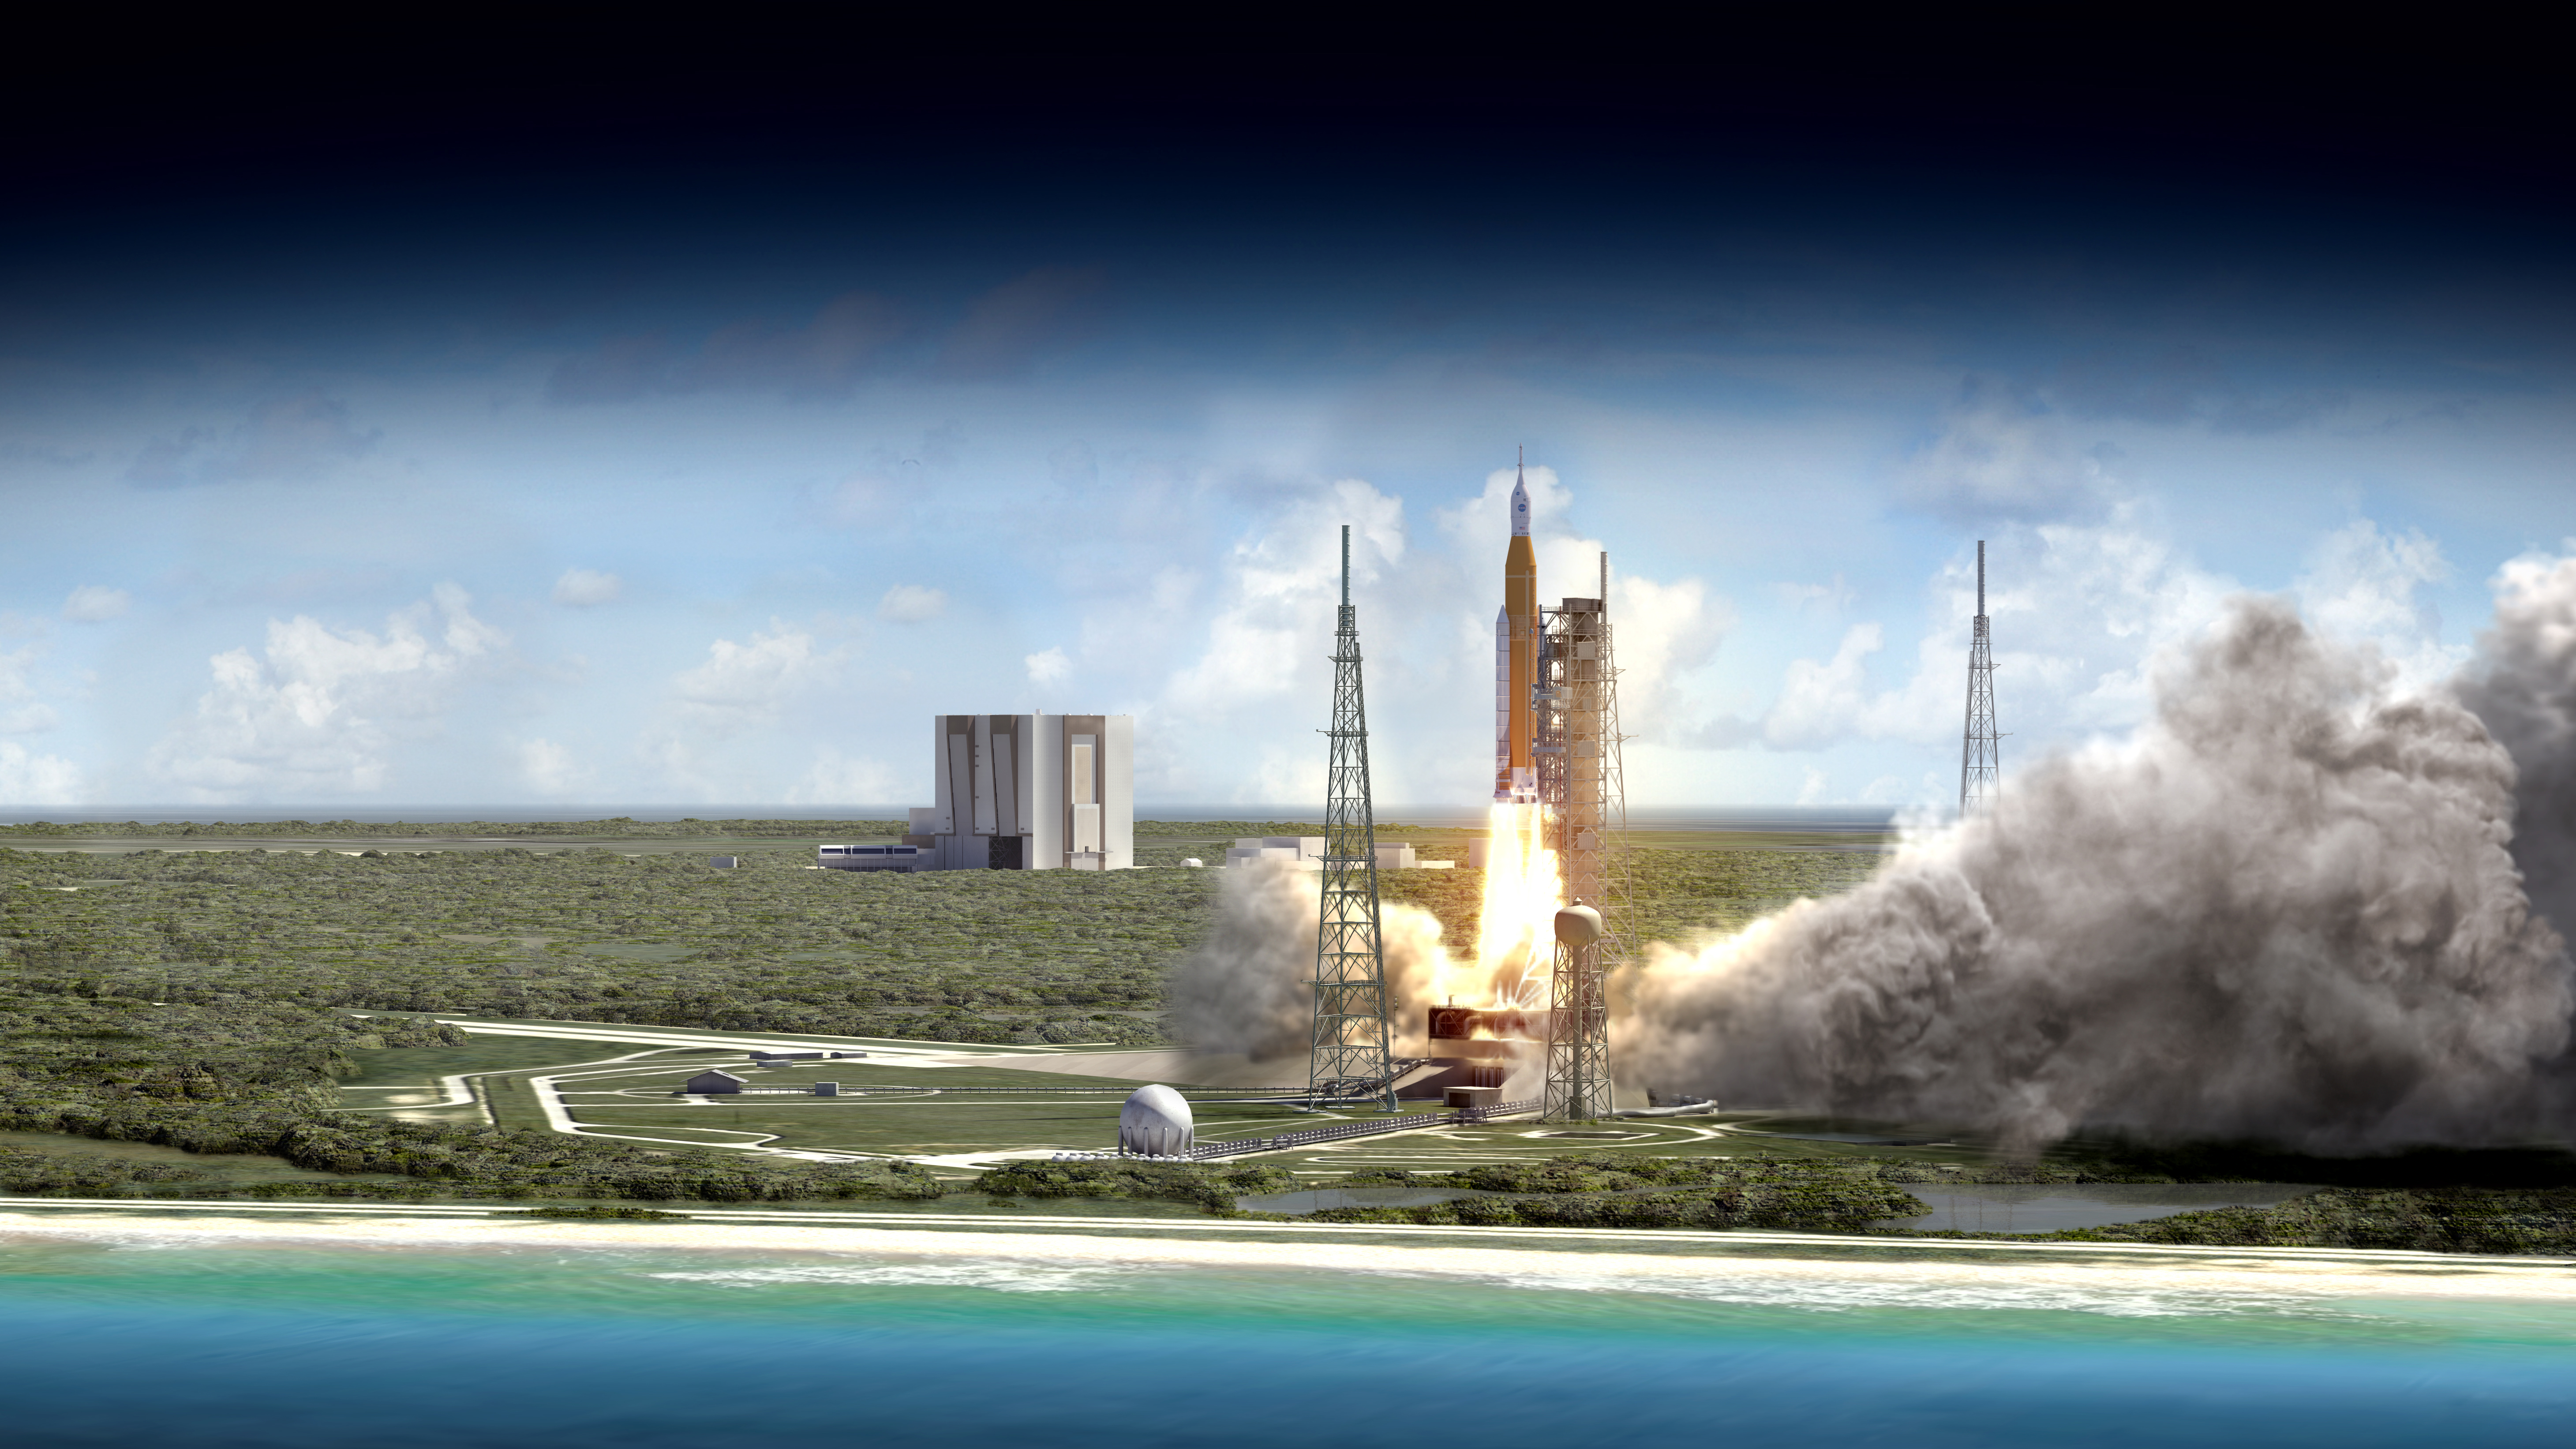 NASA uses water blast to test Space Launch System advise